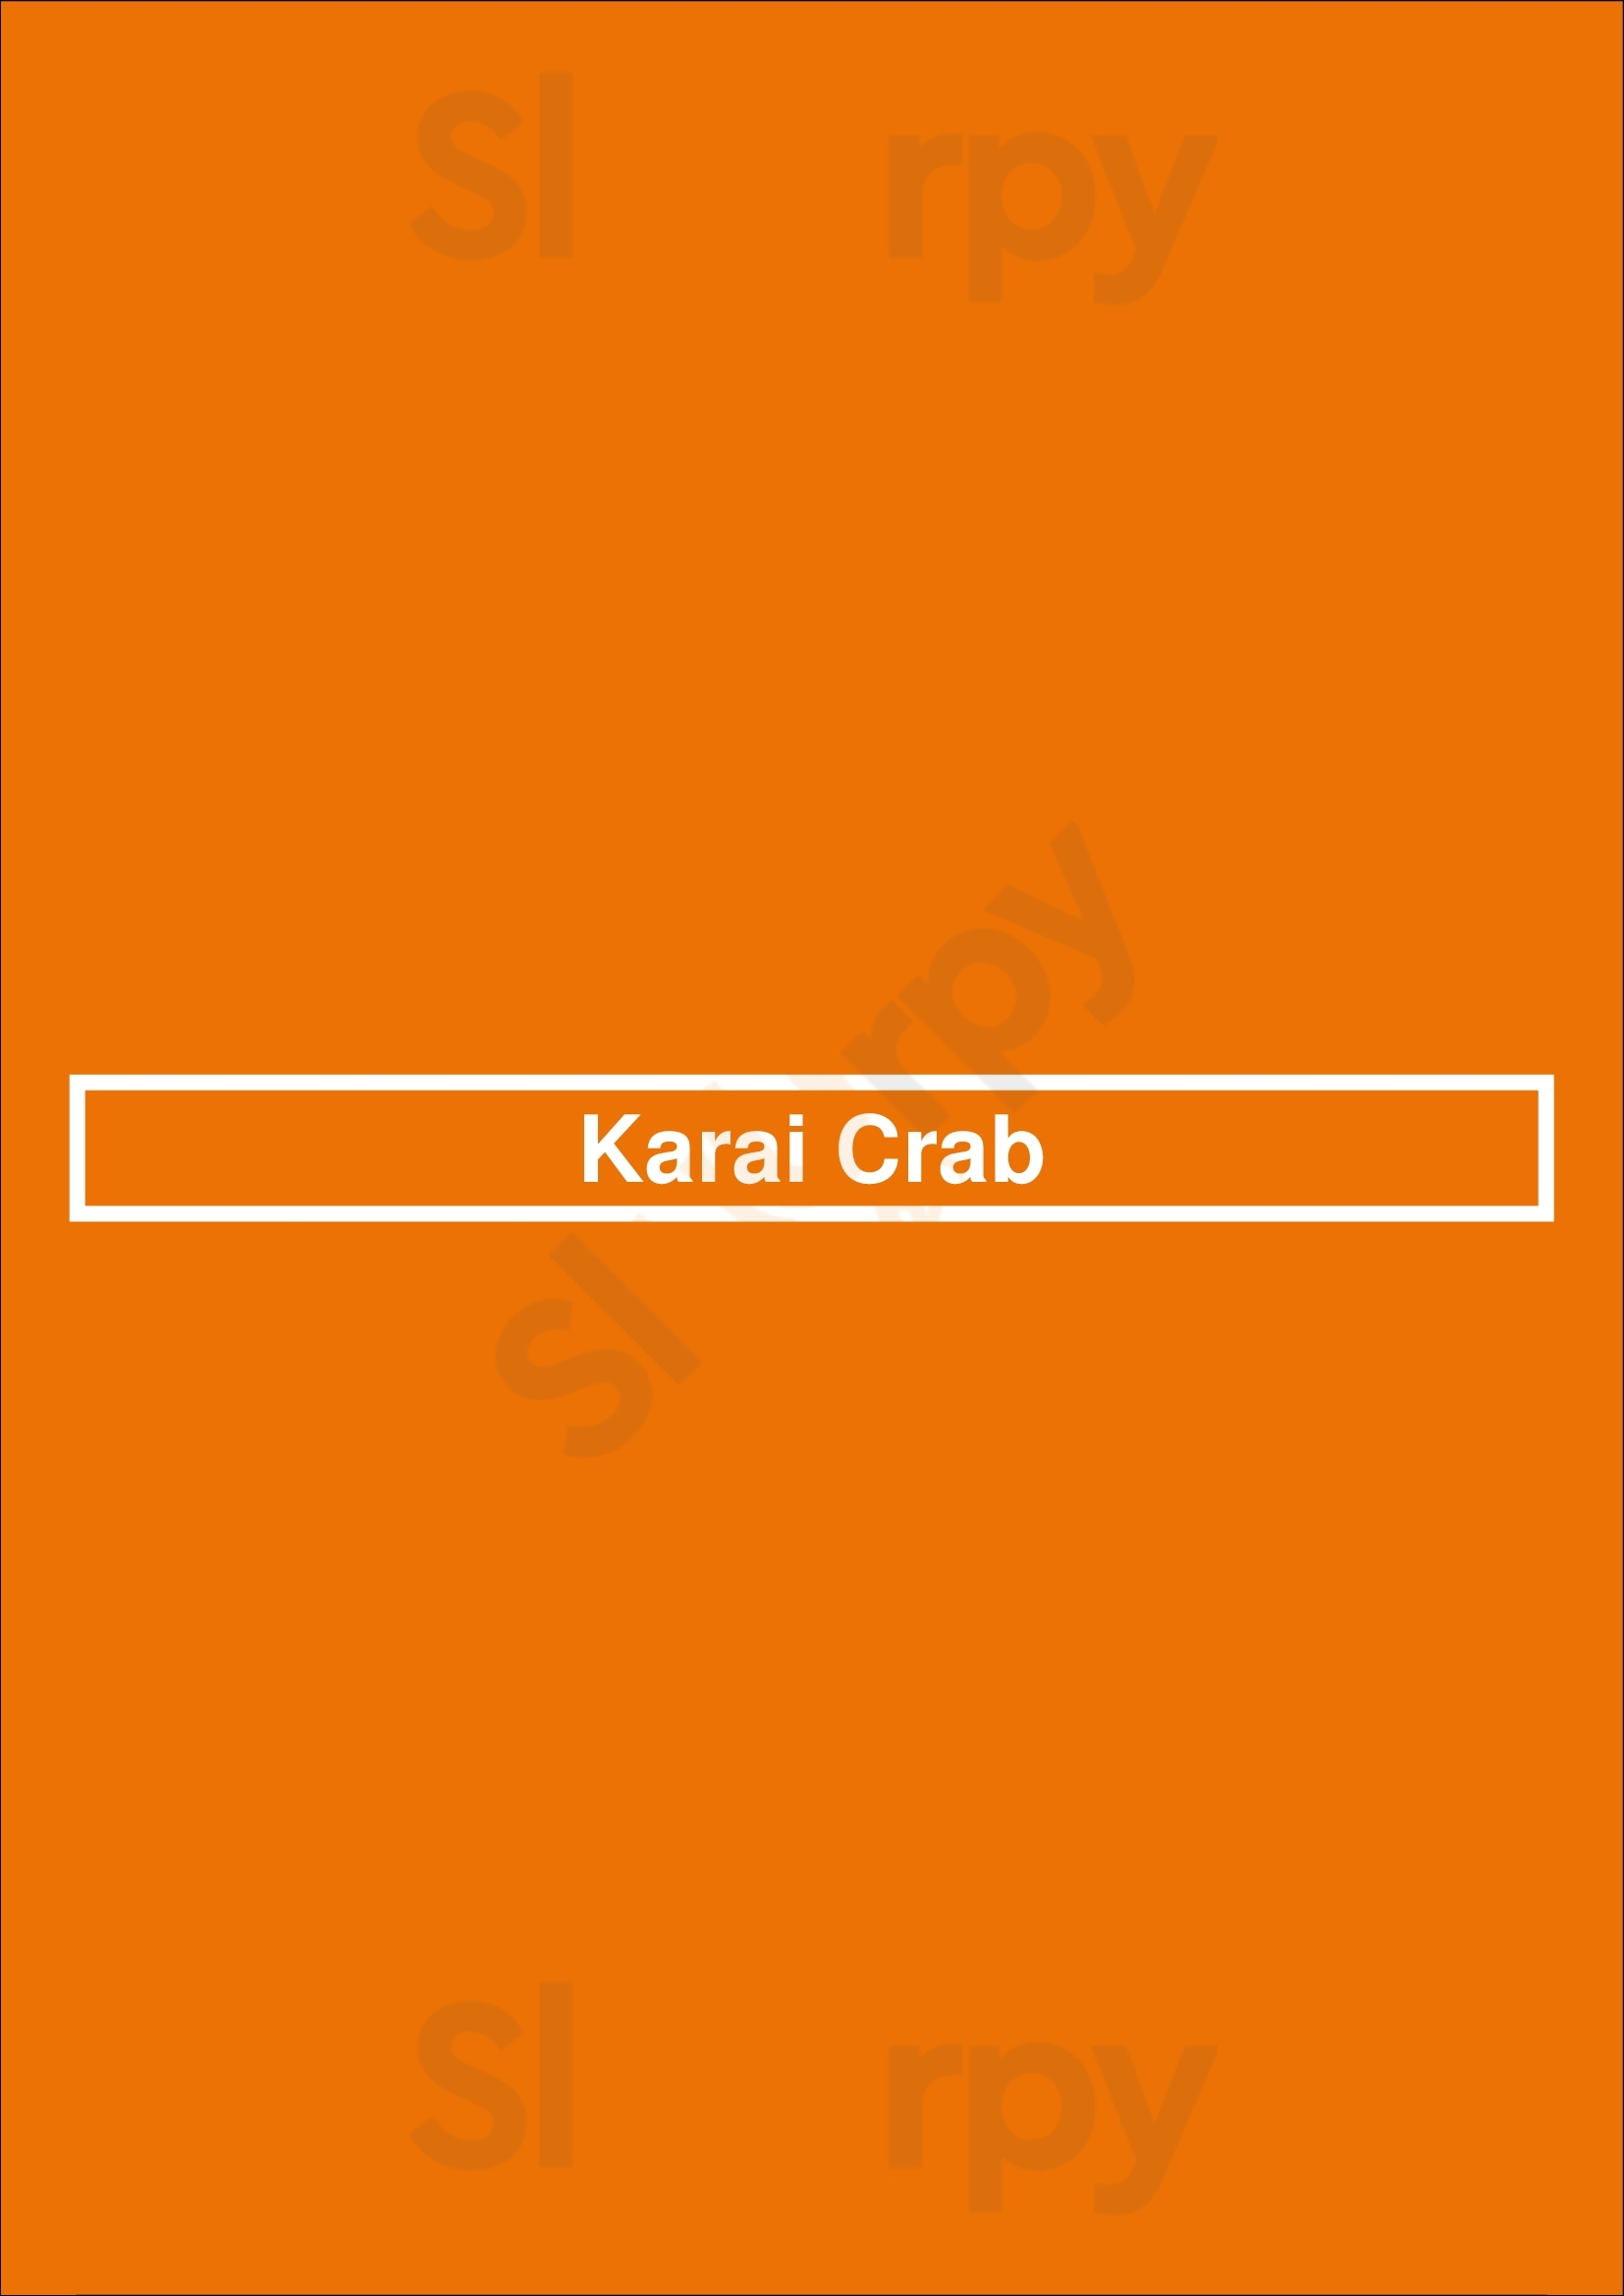 Karai Crab Honolulu Menu - 1